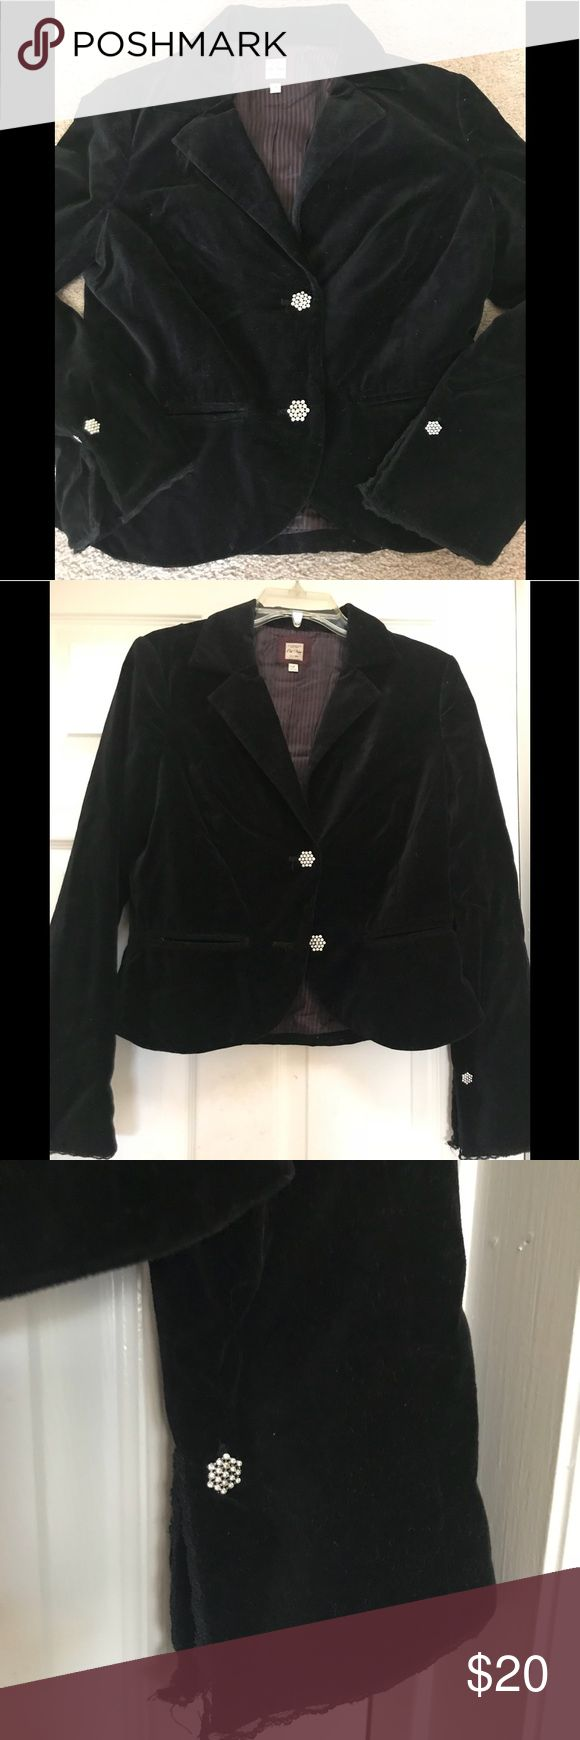 Old Navy Velvet Blazer Black blazer with rhinestone embellishments on buttons  SEE MATCHING SKIRT IN MY CLOSET AS WELL Old Navy Jackets & Coats Blazers